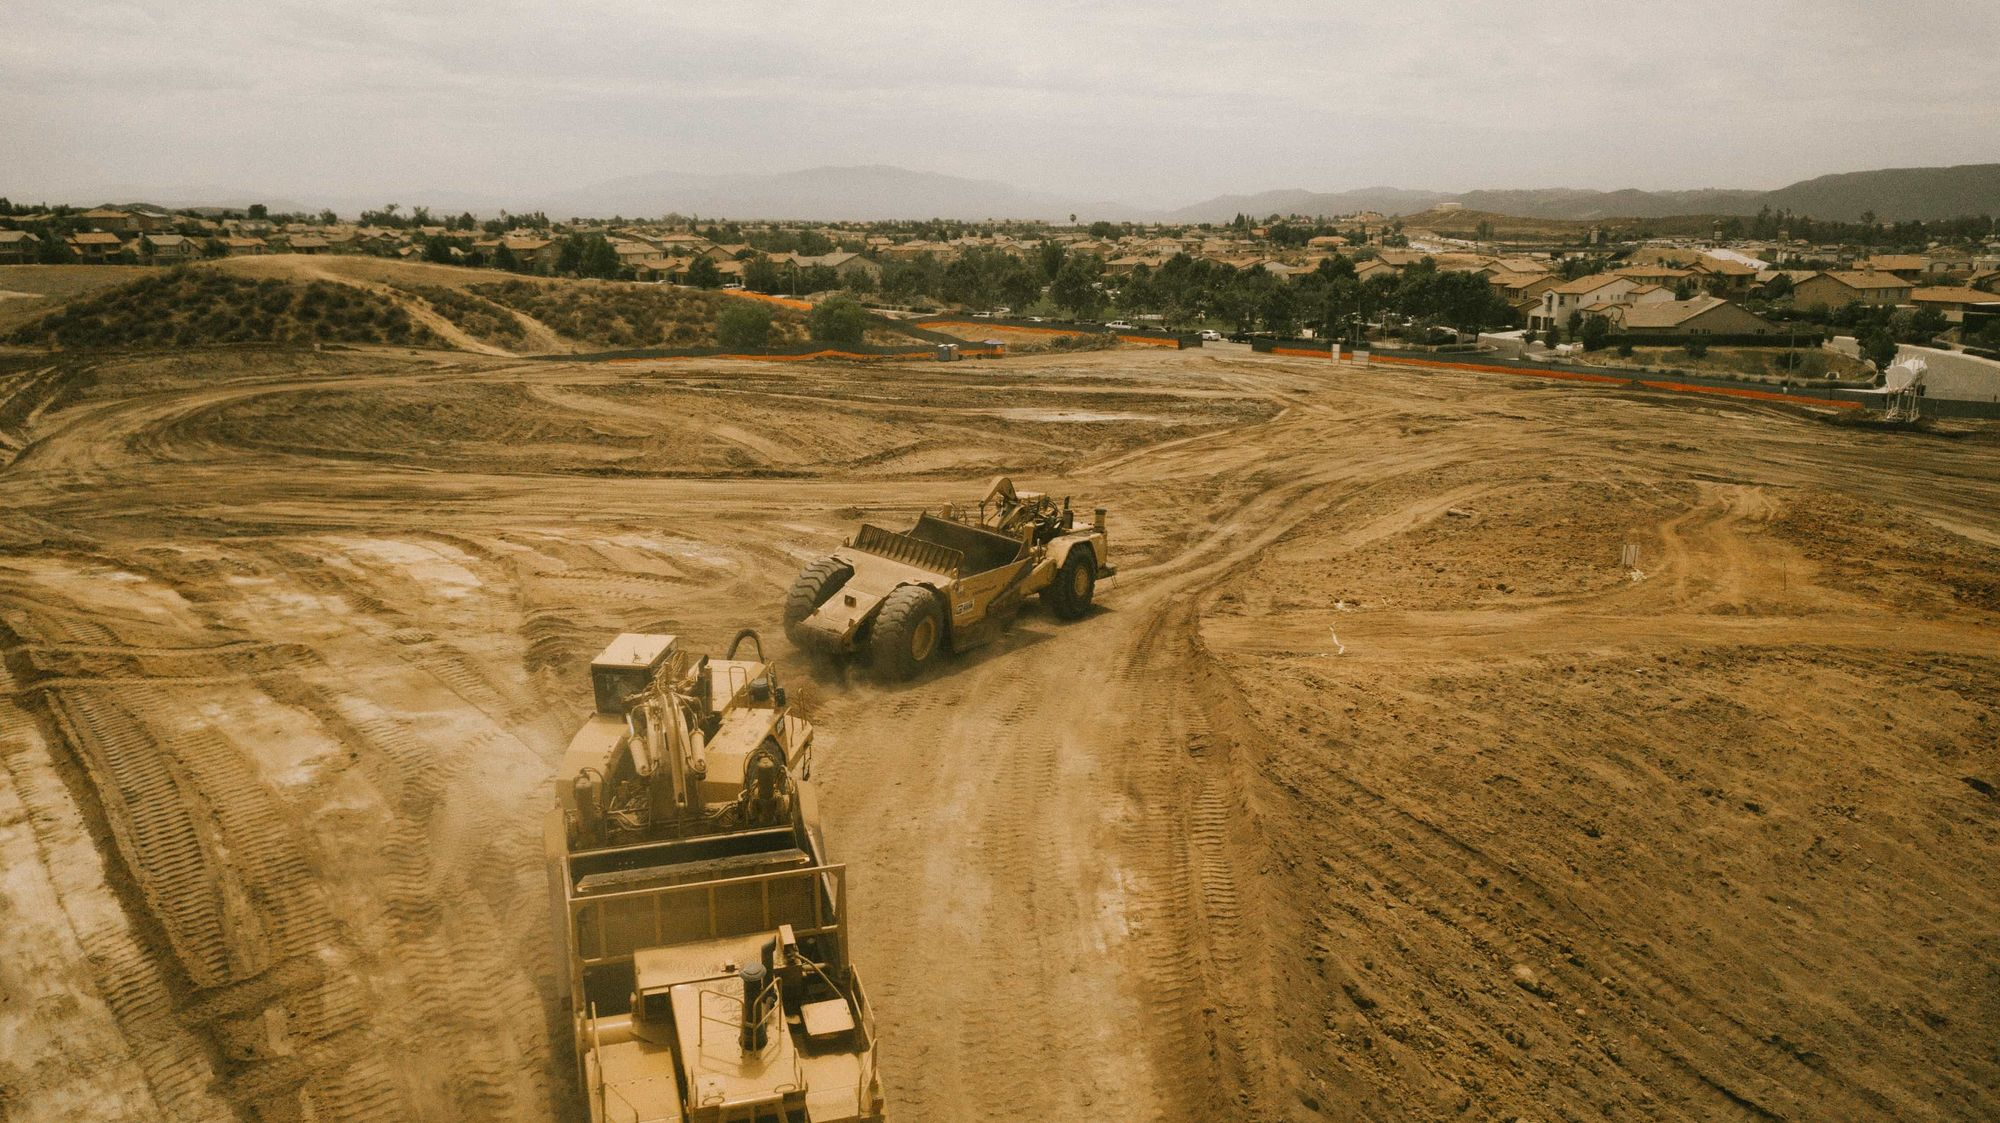 Rough Grading Nears Completion